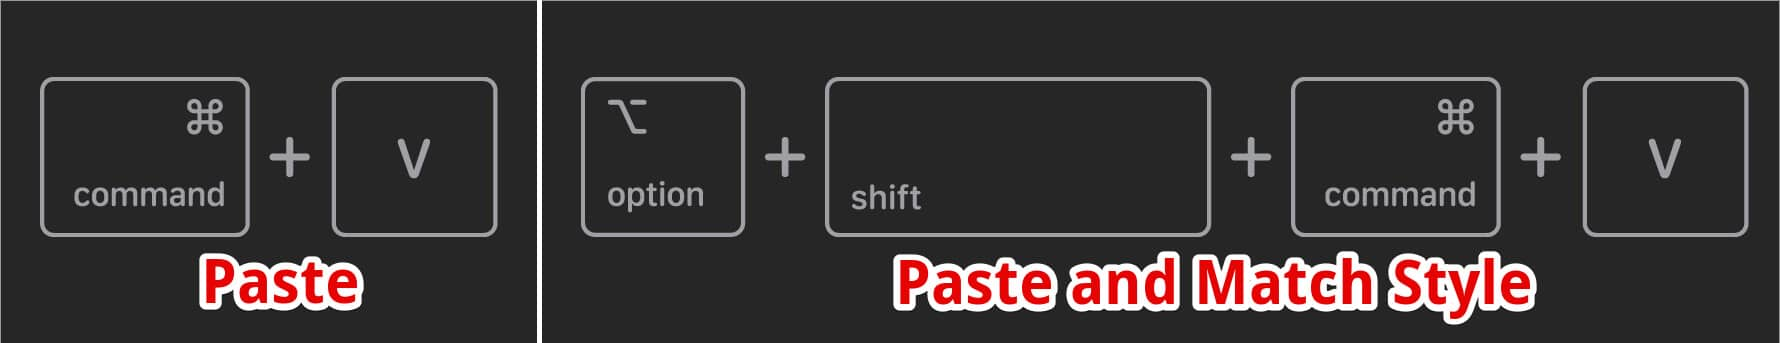 Difference between Paste and Paste and Match Style on Mac